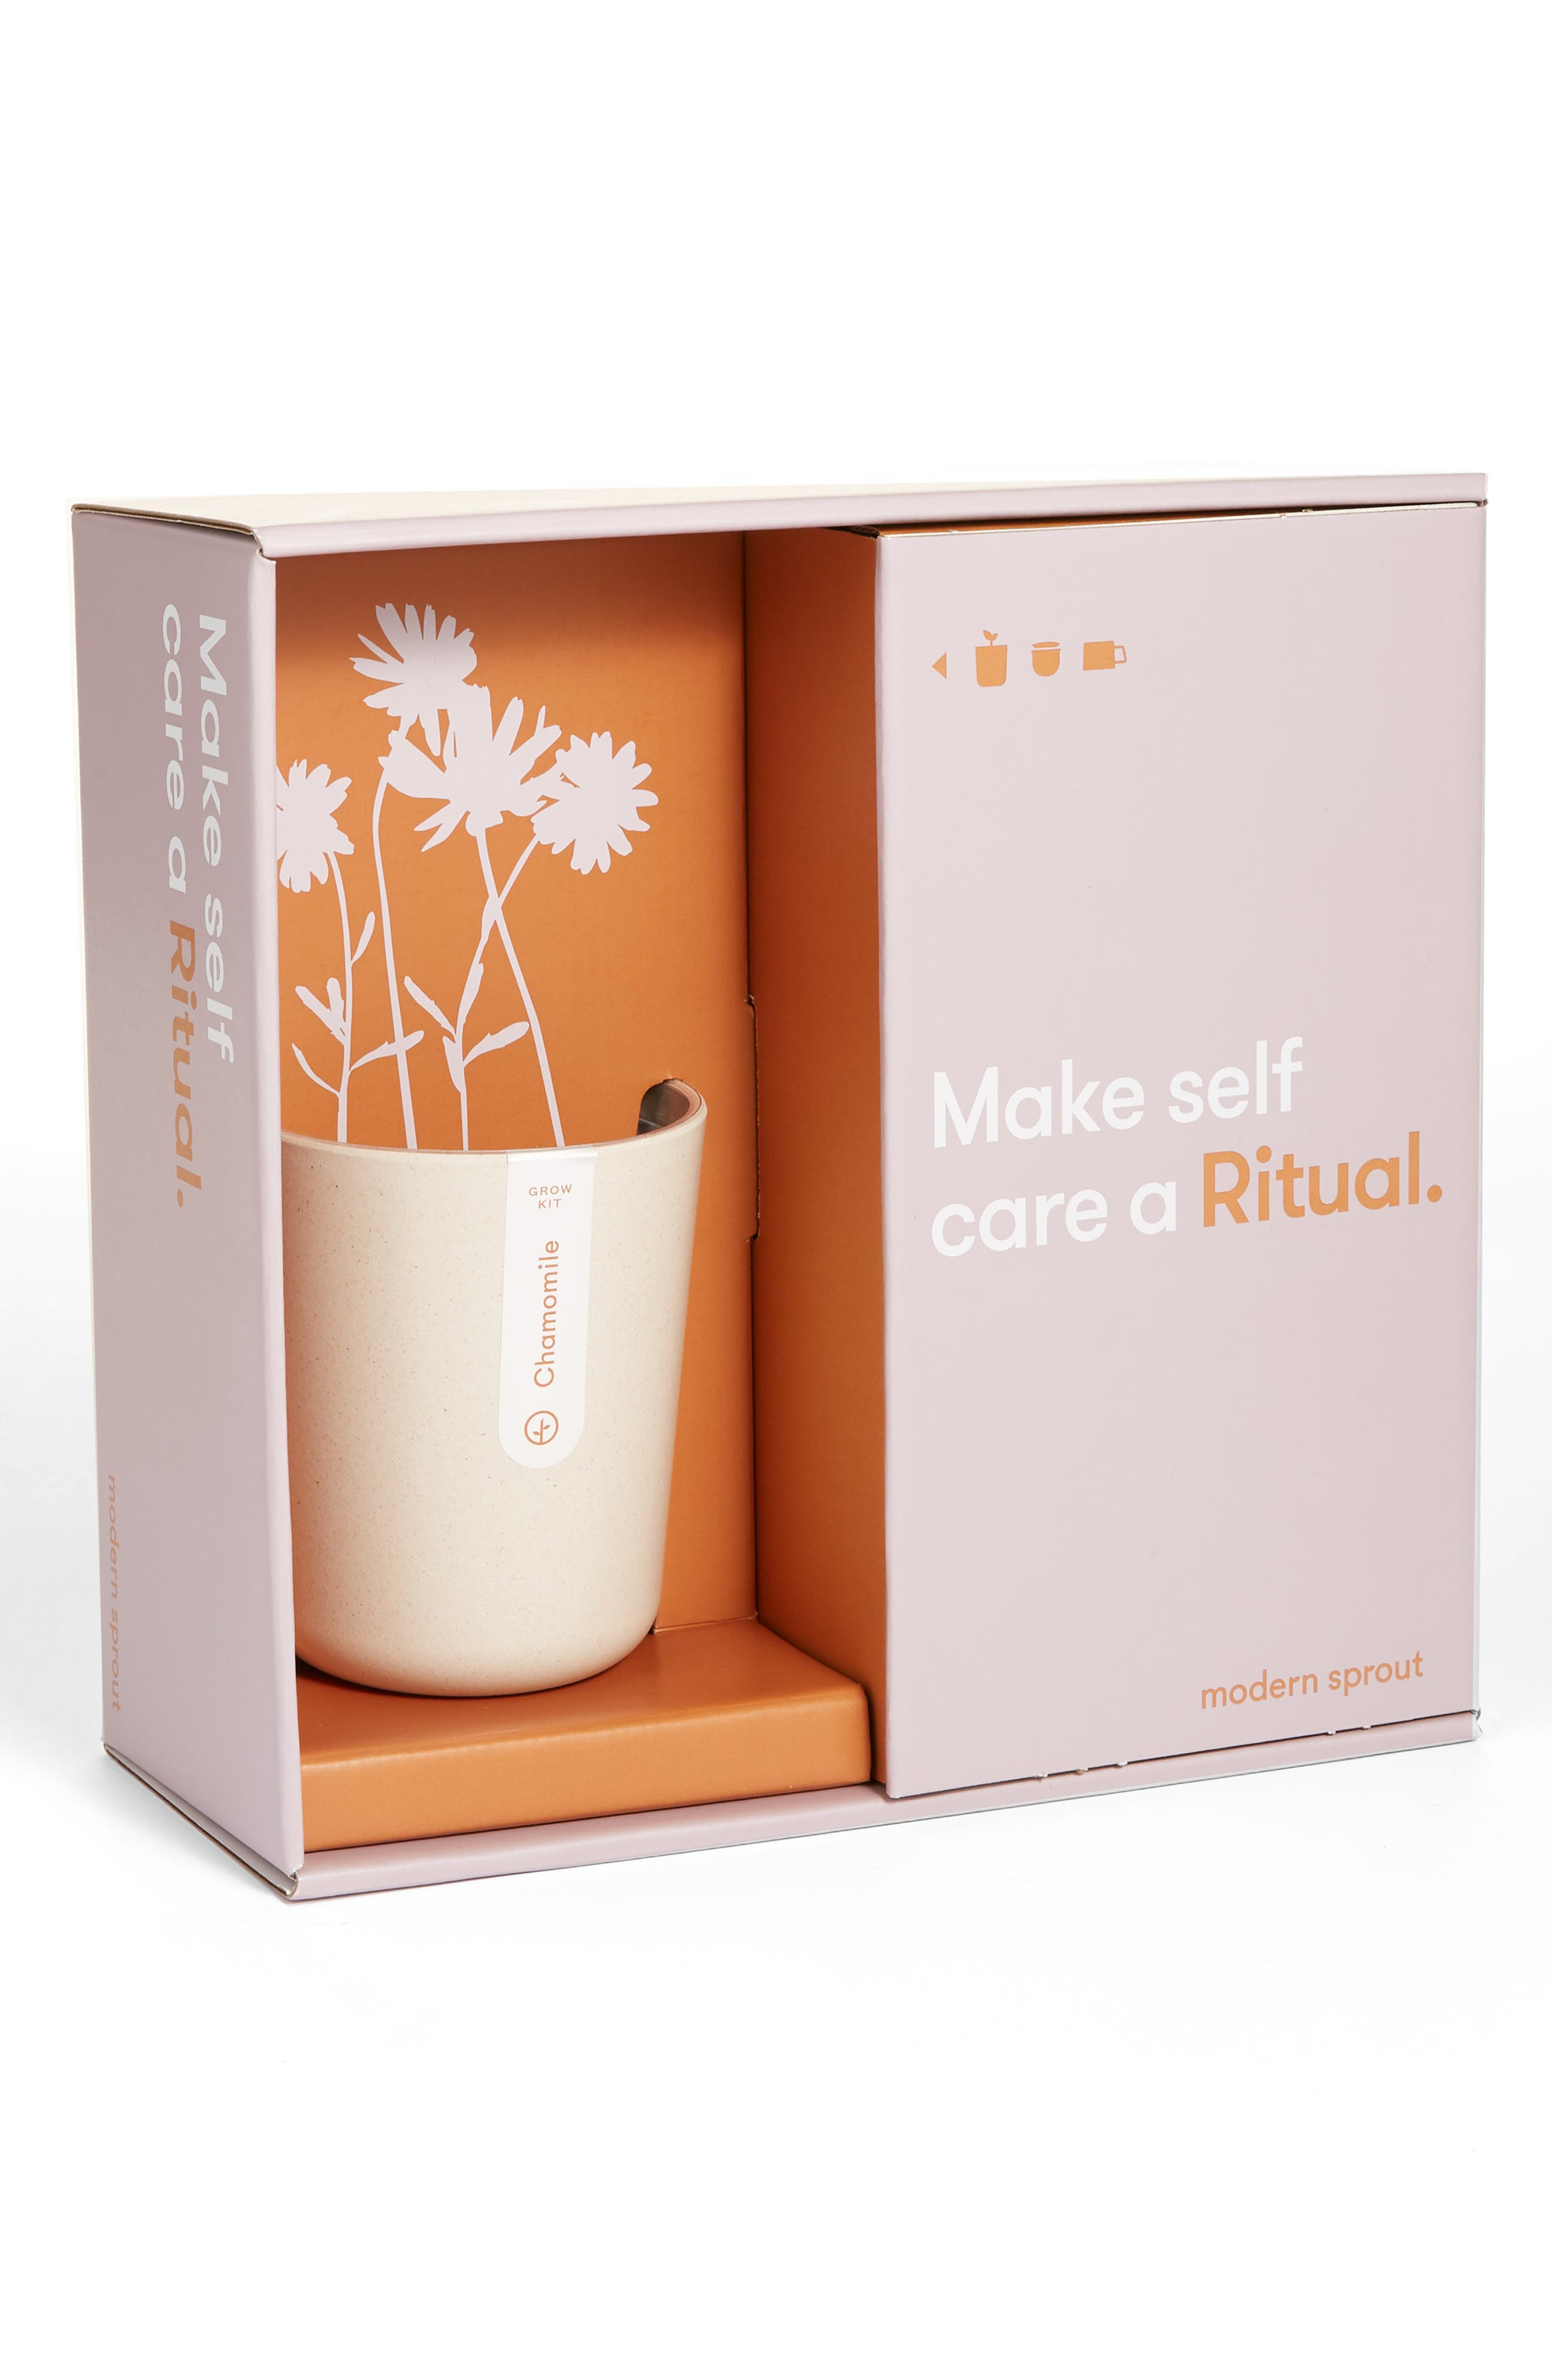 Give the gift of purposeful sanctuary with this self-watering chamomile grow kit that comes with a mug, lid and steeper to brew your own relaxing cup of tea. Style Name: Modern Sprout Live Well Ritual Gift Set. Style Number: 5950376. Available in stores.